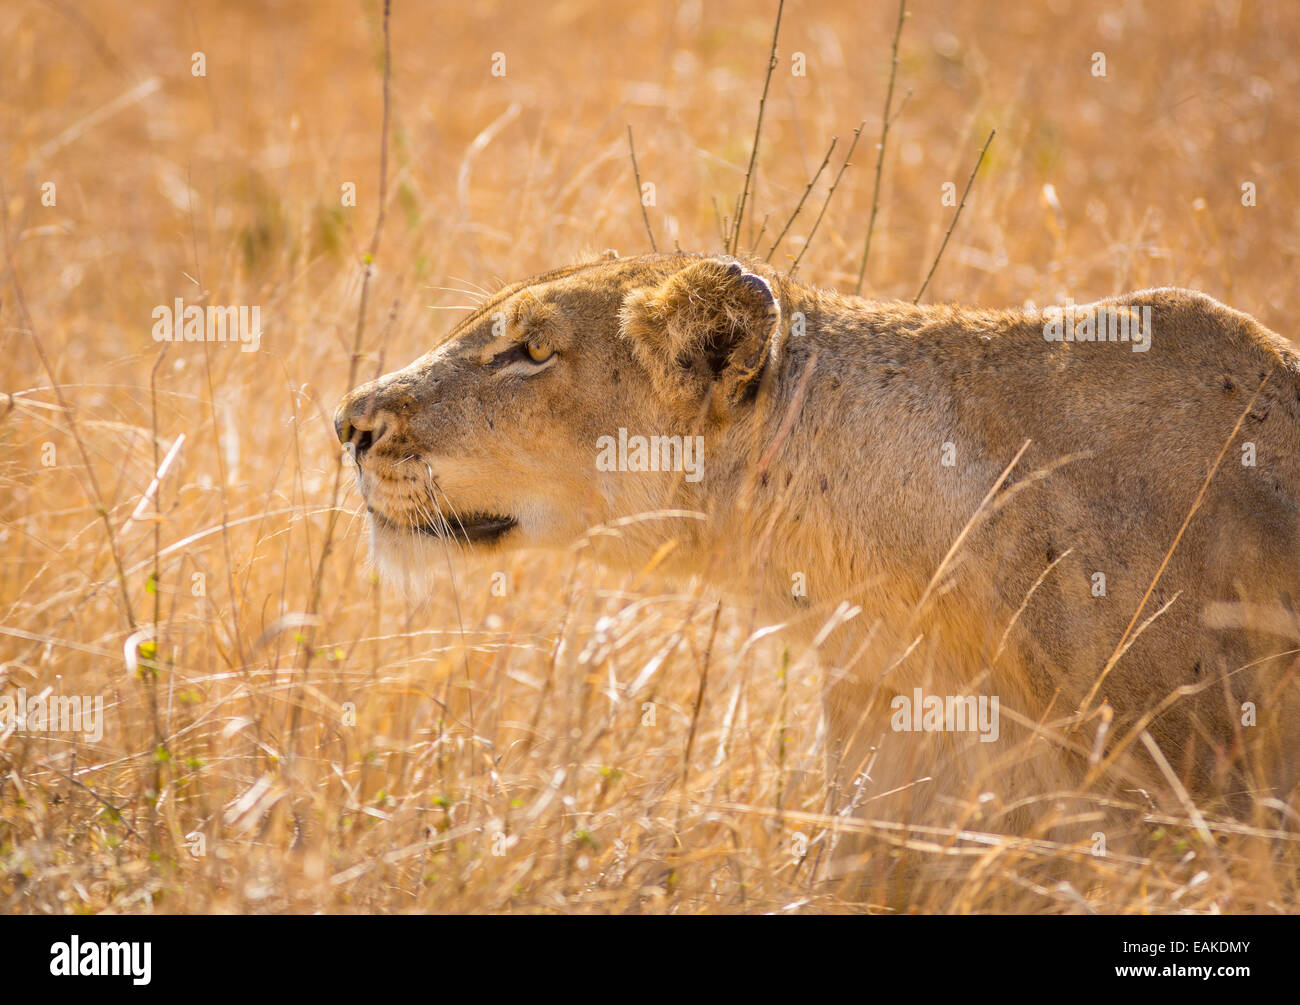 Lion Hunting Africa Stock Photos & Lion Hunting Africa ...